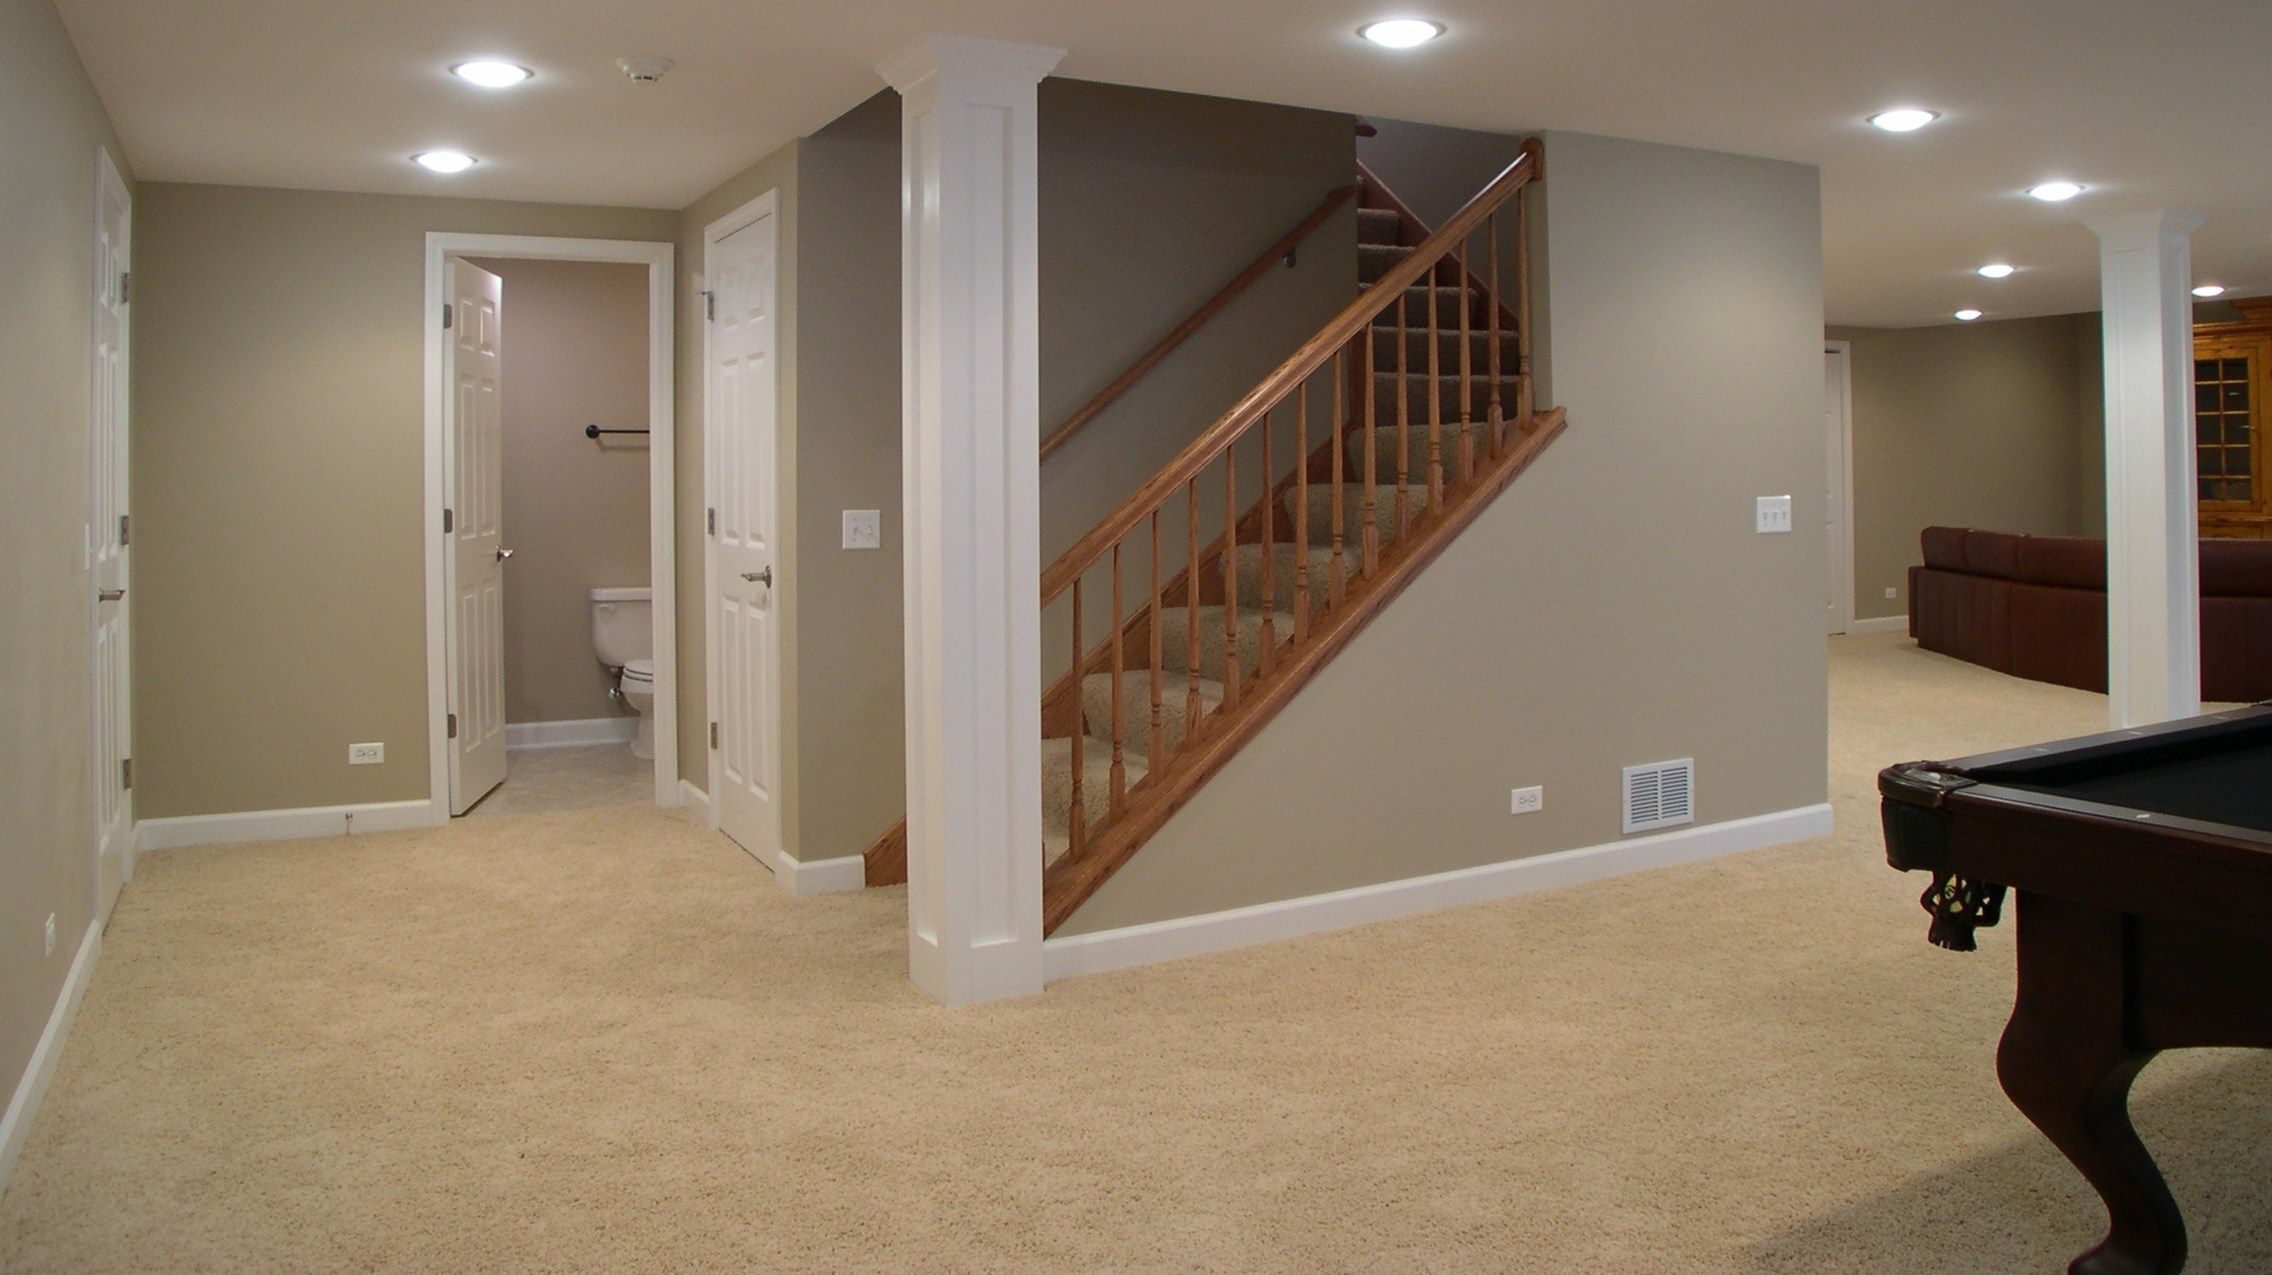 Basement Stairs Ideas: Basement Stairs... I Wonder If This Is Possible With Ours